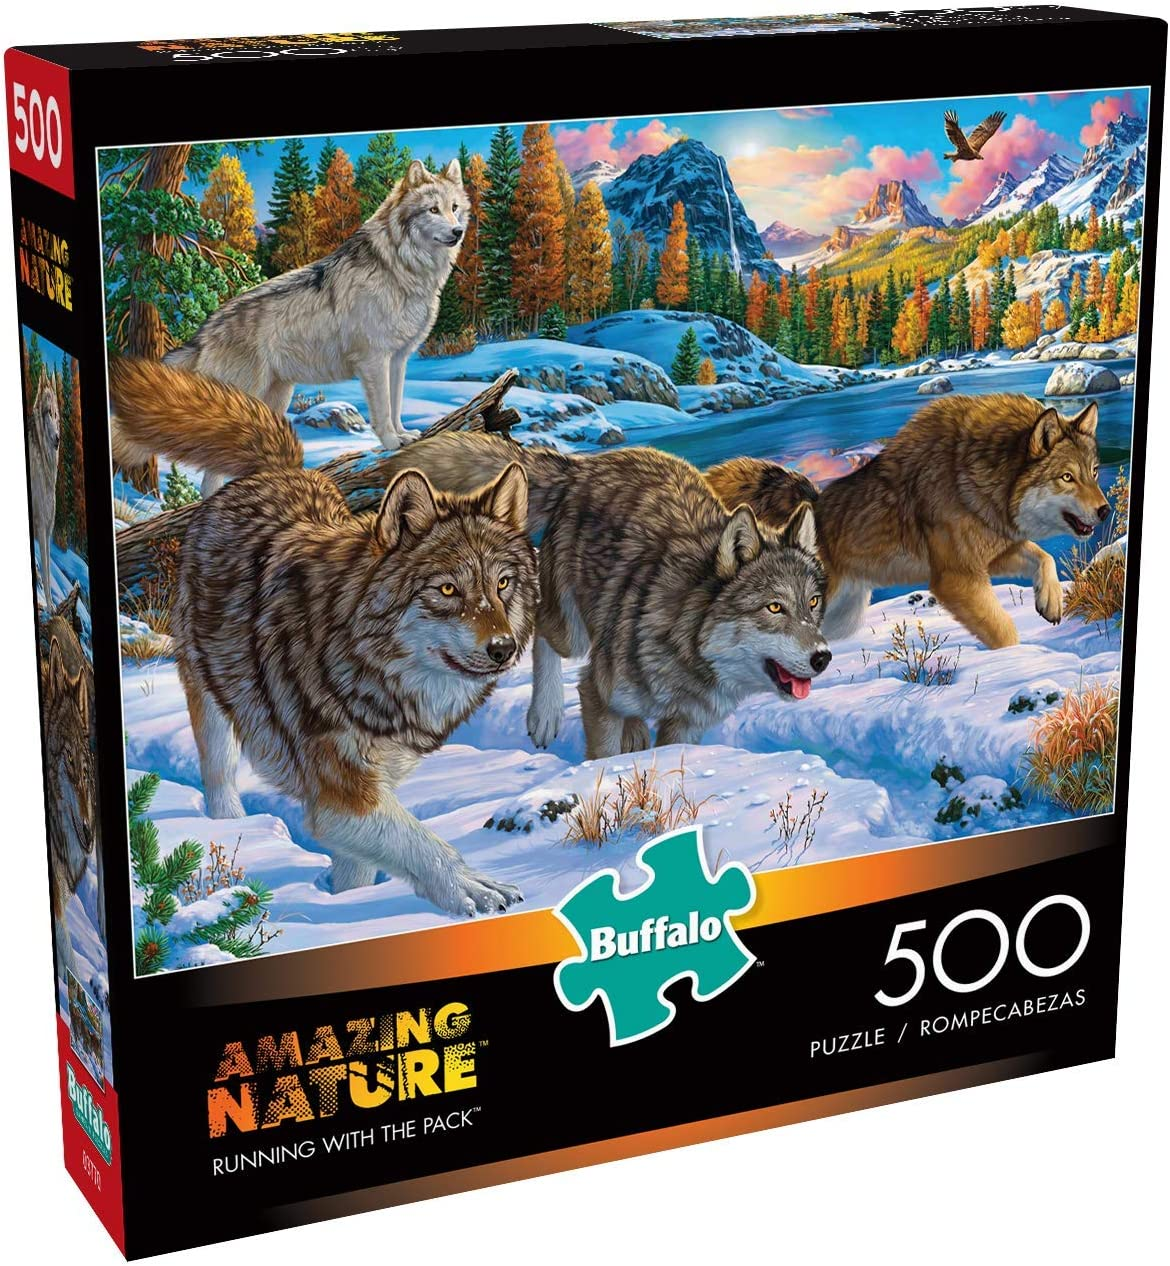 500 Piece Jigsaw Puzzle Running with The Pack Buffalo Games